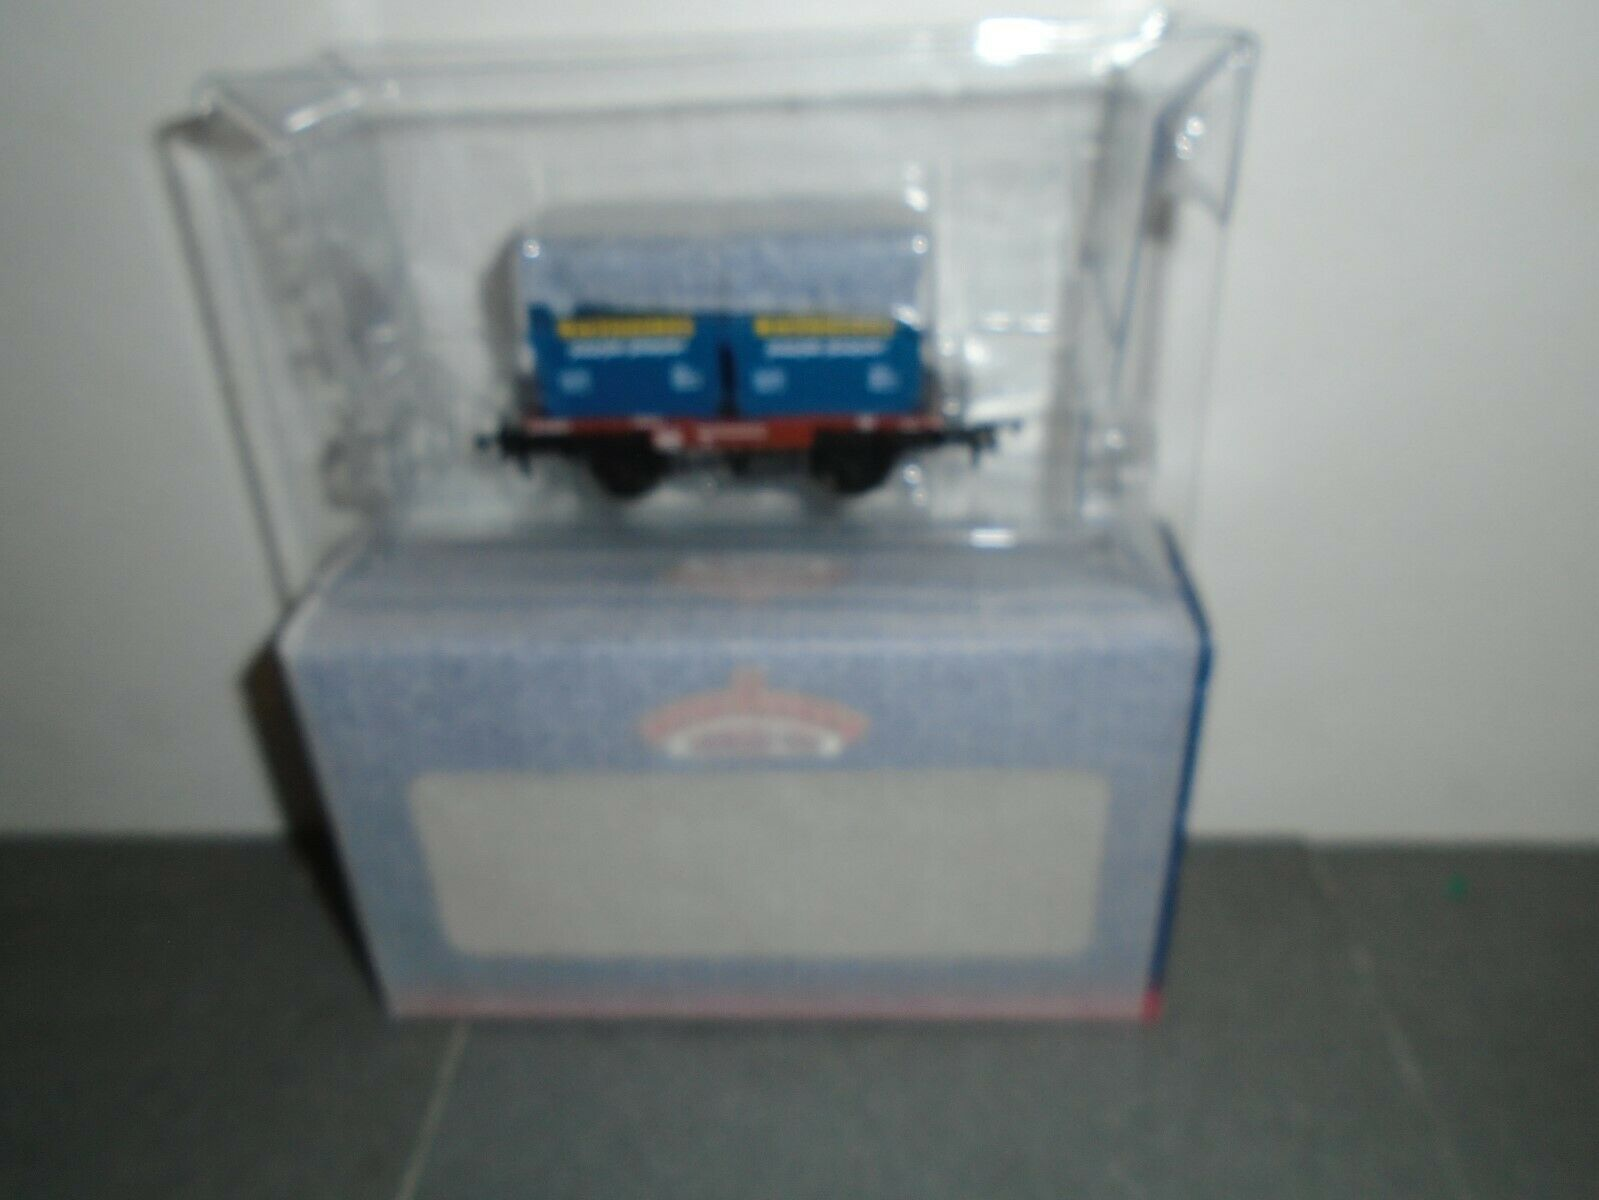 Bachuomon 37975X  BR i Plank Conflat CW MacFisheries Containers LTD ED 00g.